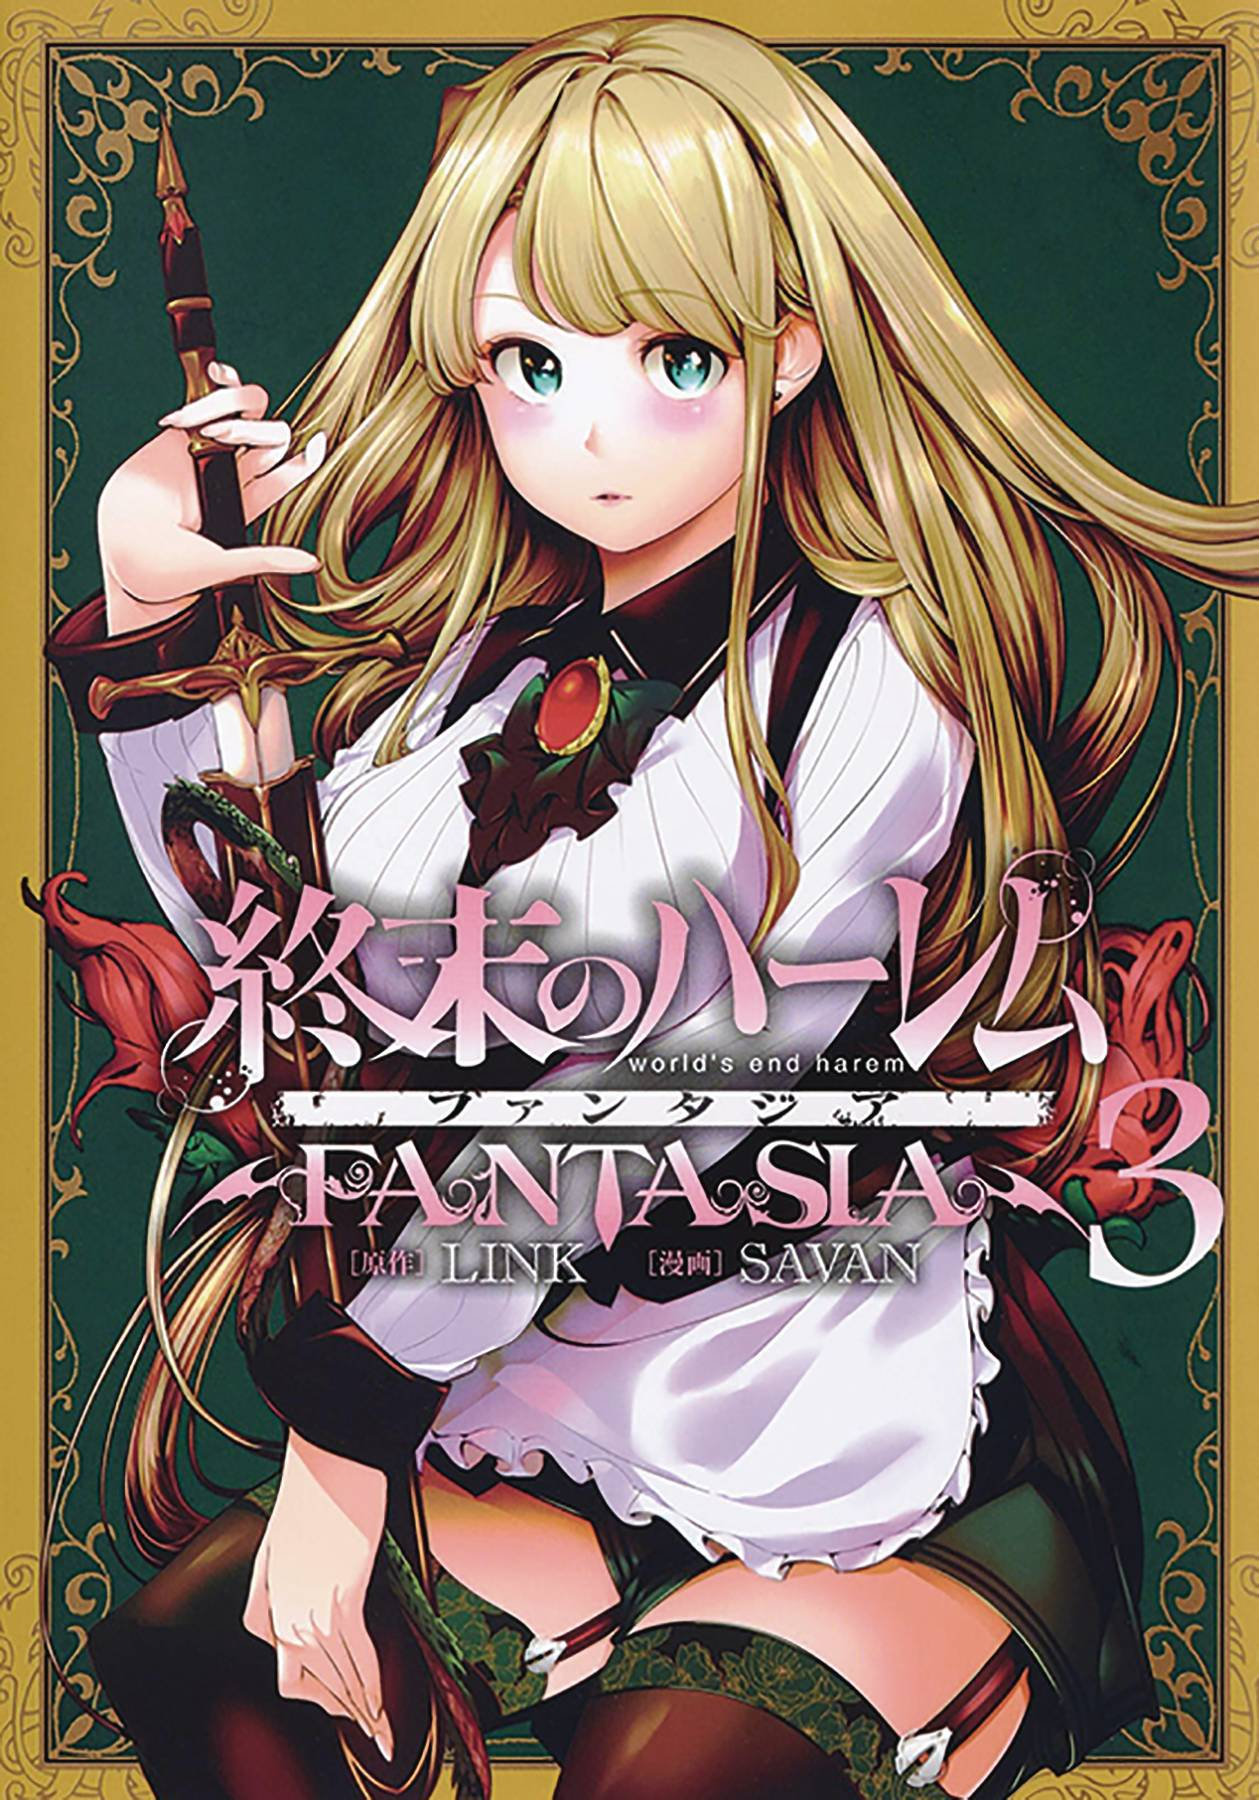 WORLDS END HAREM FANTASIA GN 03